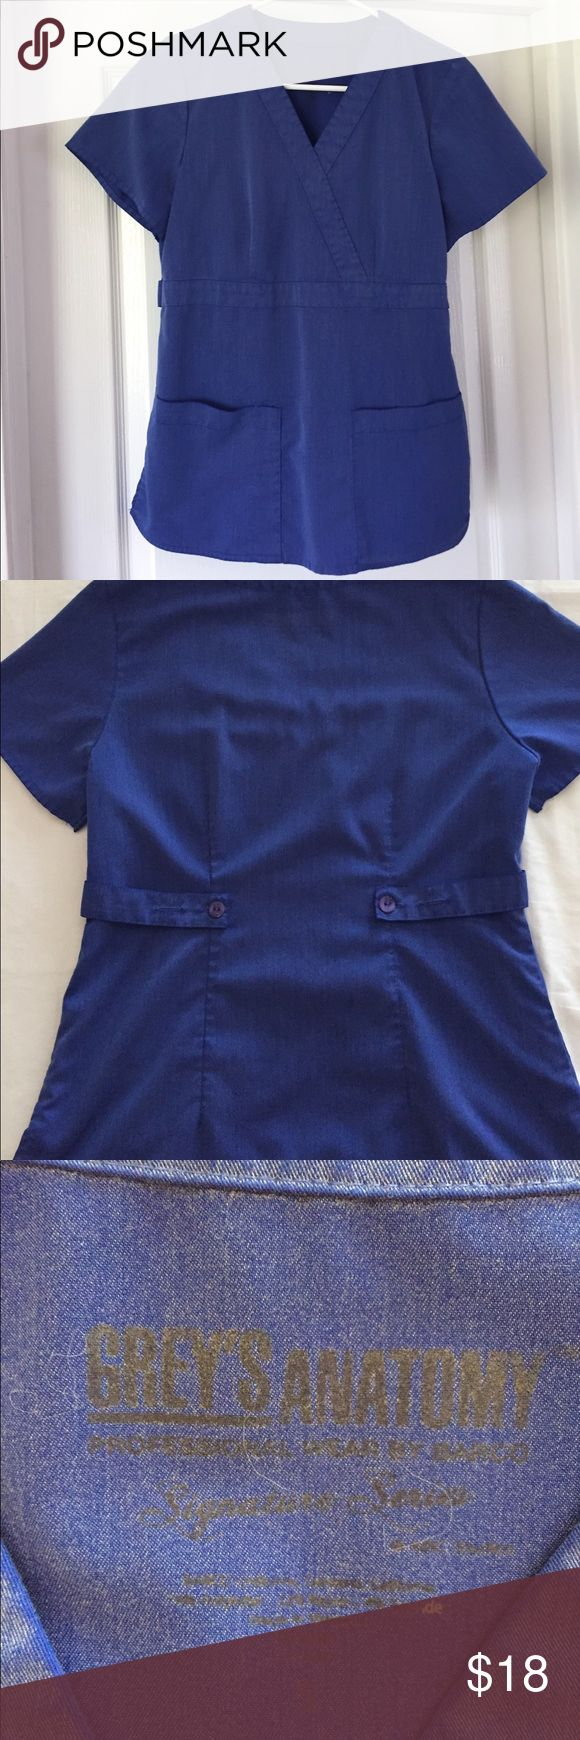 Grey's Anatomy Scrub Top Heather Grey's Anatomy Scrub top. Style is the mock wrap top fitted with 3 pockets and button tabs. Near perfect condition. Size small. Grey's Anatomy Tops